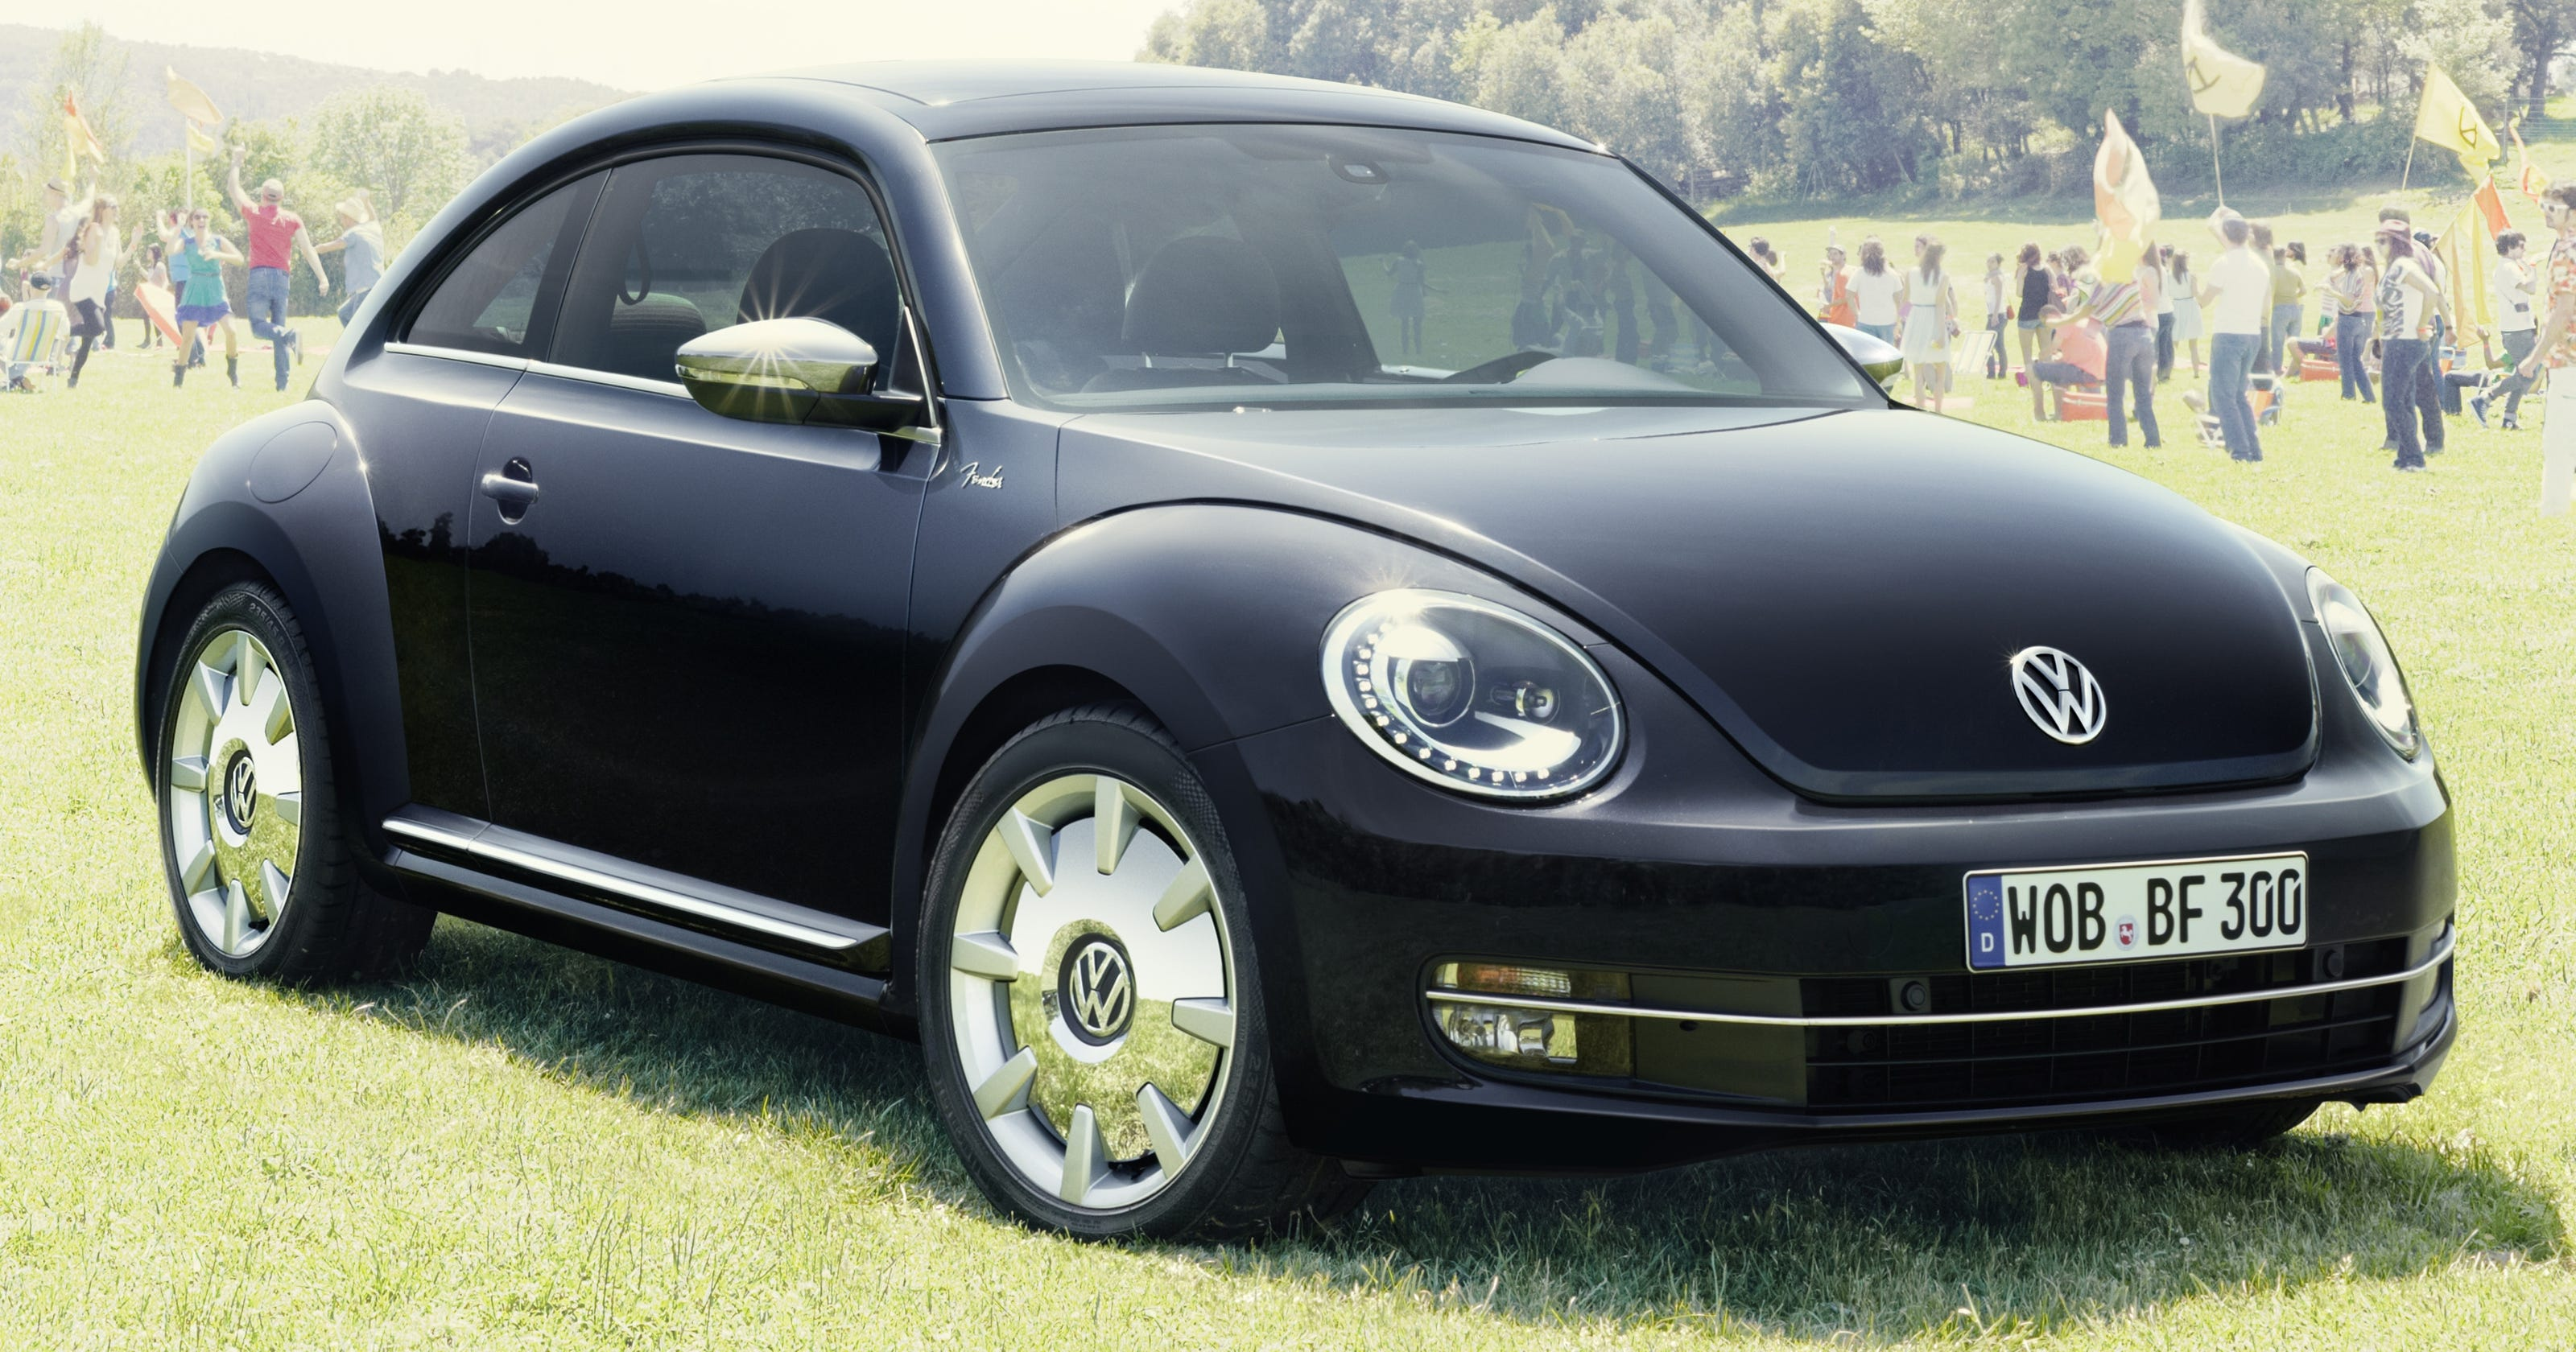 Vw Recalls Upscale Beetle For Airbag Danger For Kids